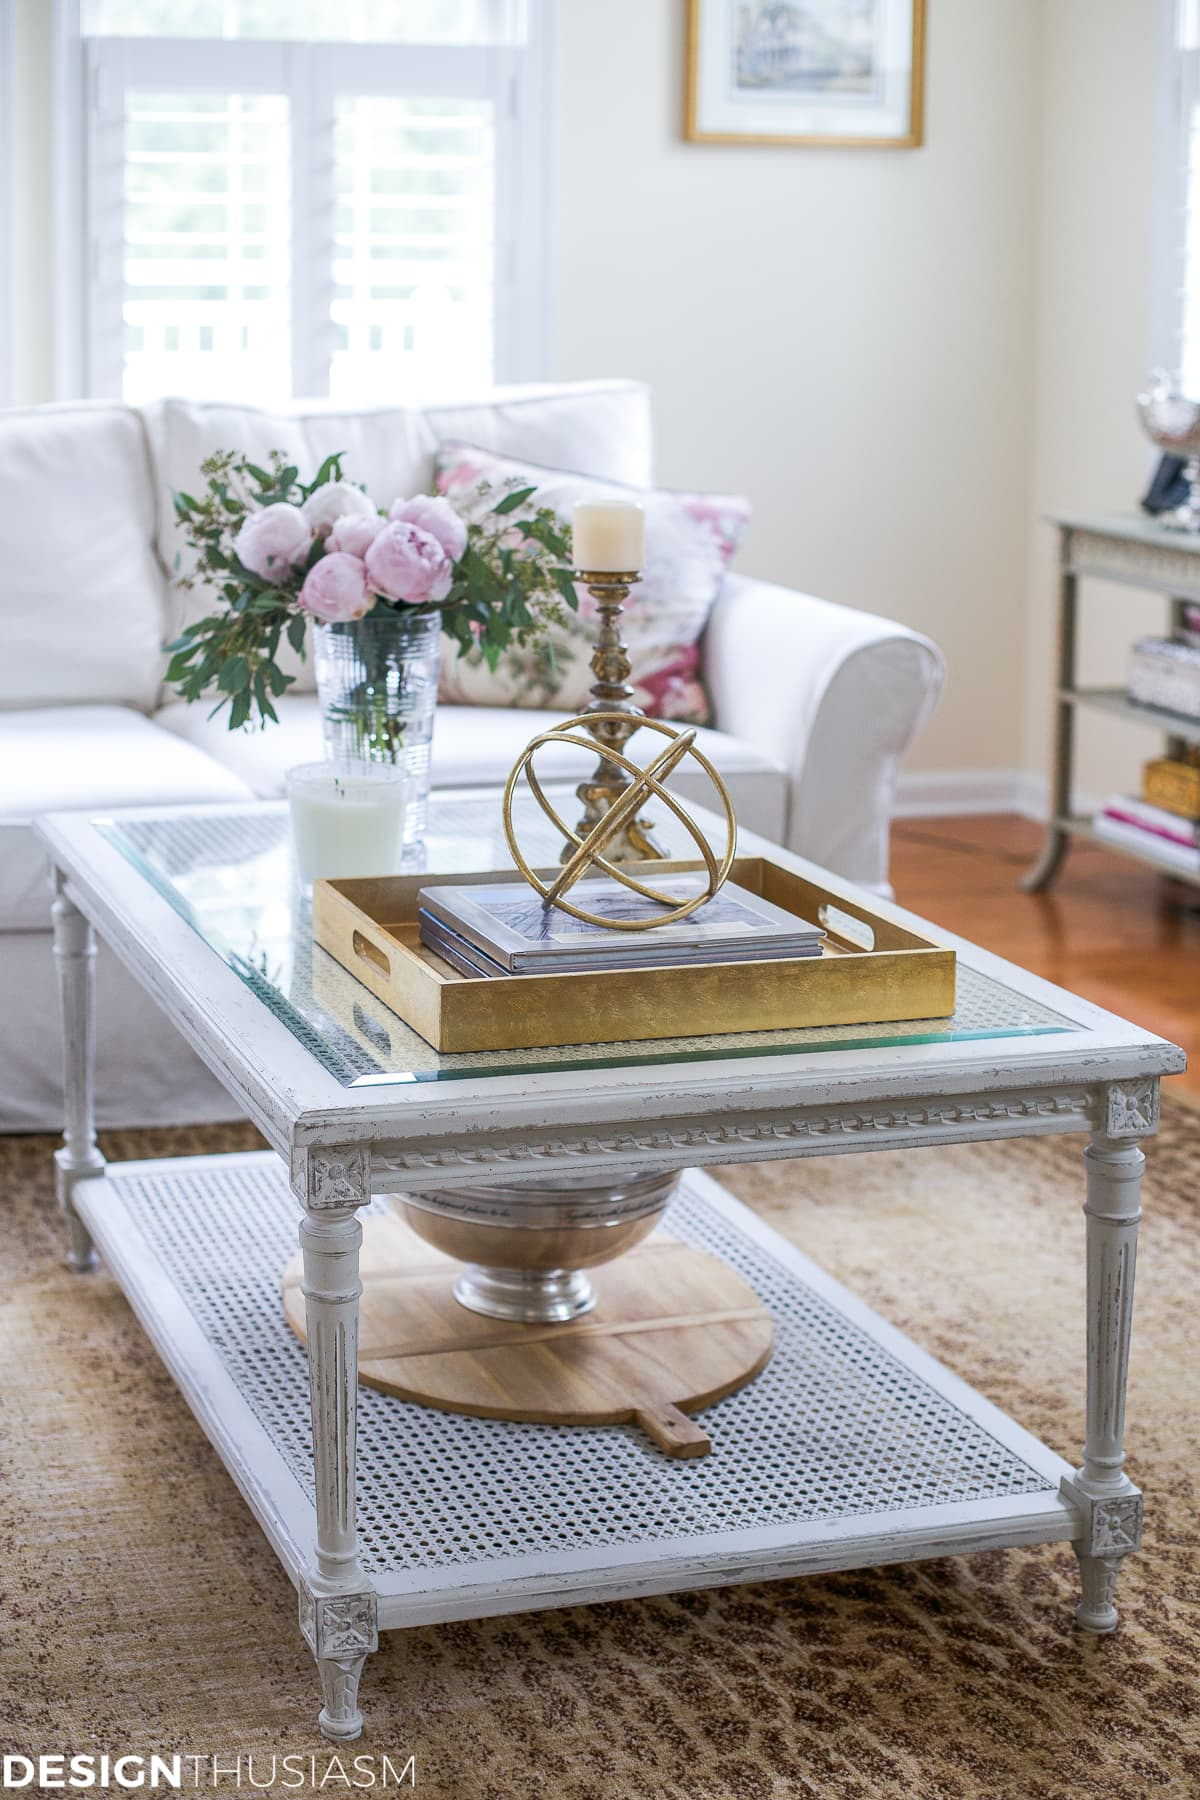 Updating the Family Room with a French Country Coffee Table - designthusiasm.com